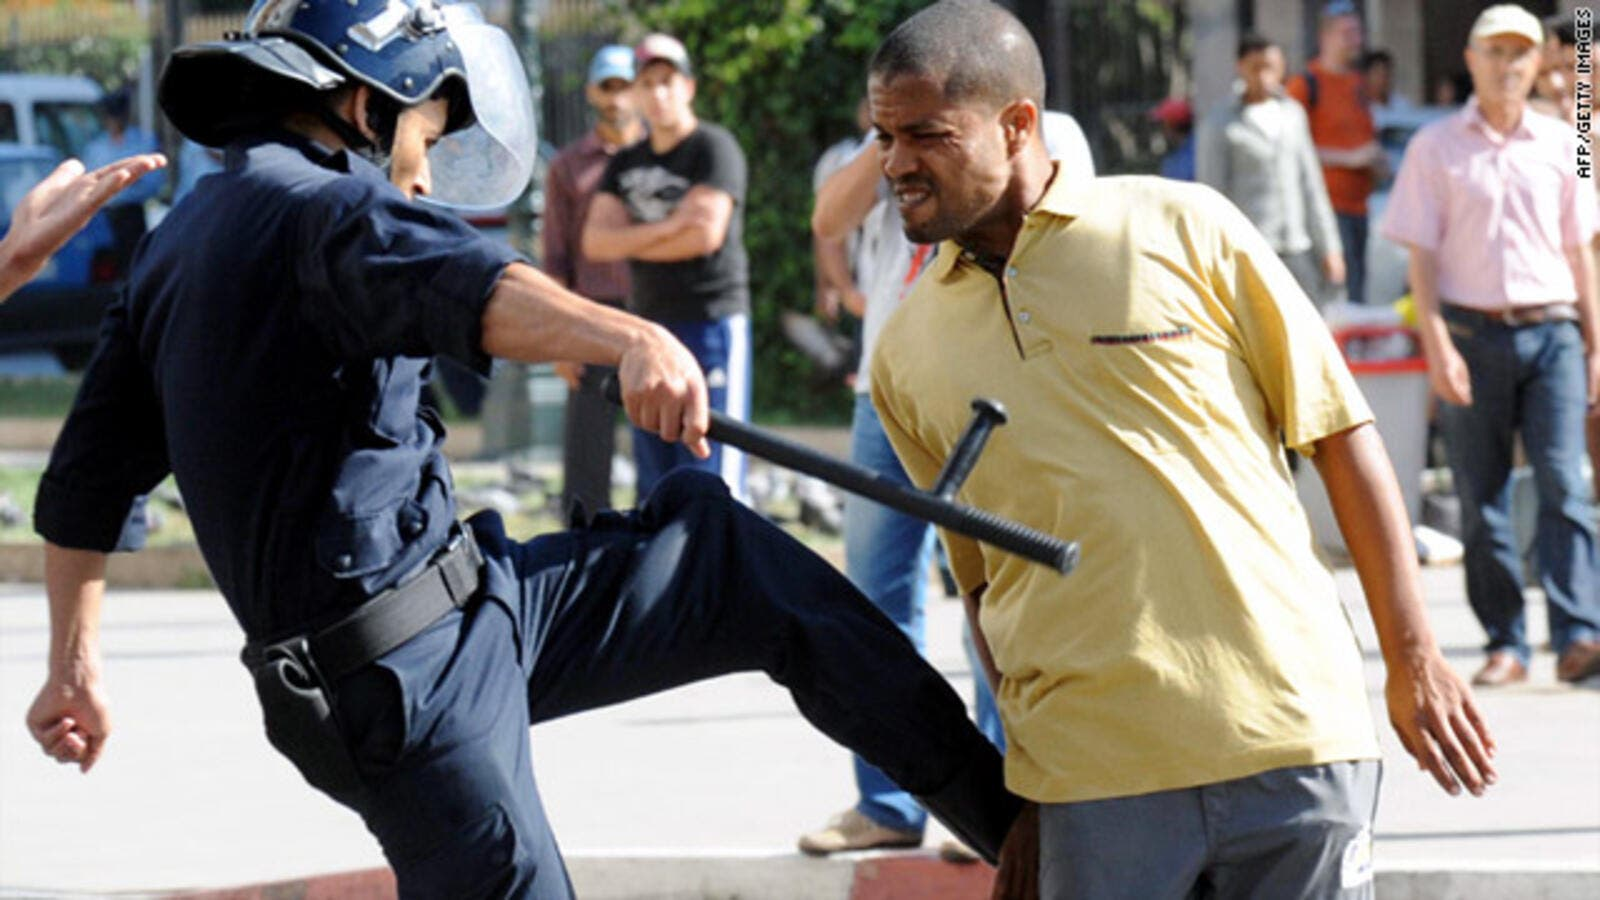 A police officer kicks a demonstrator during a protest in Rabat, Morocco. (AFP/File)